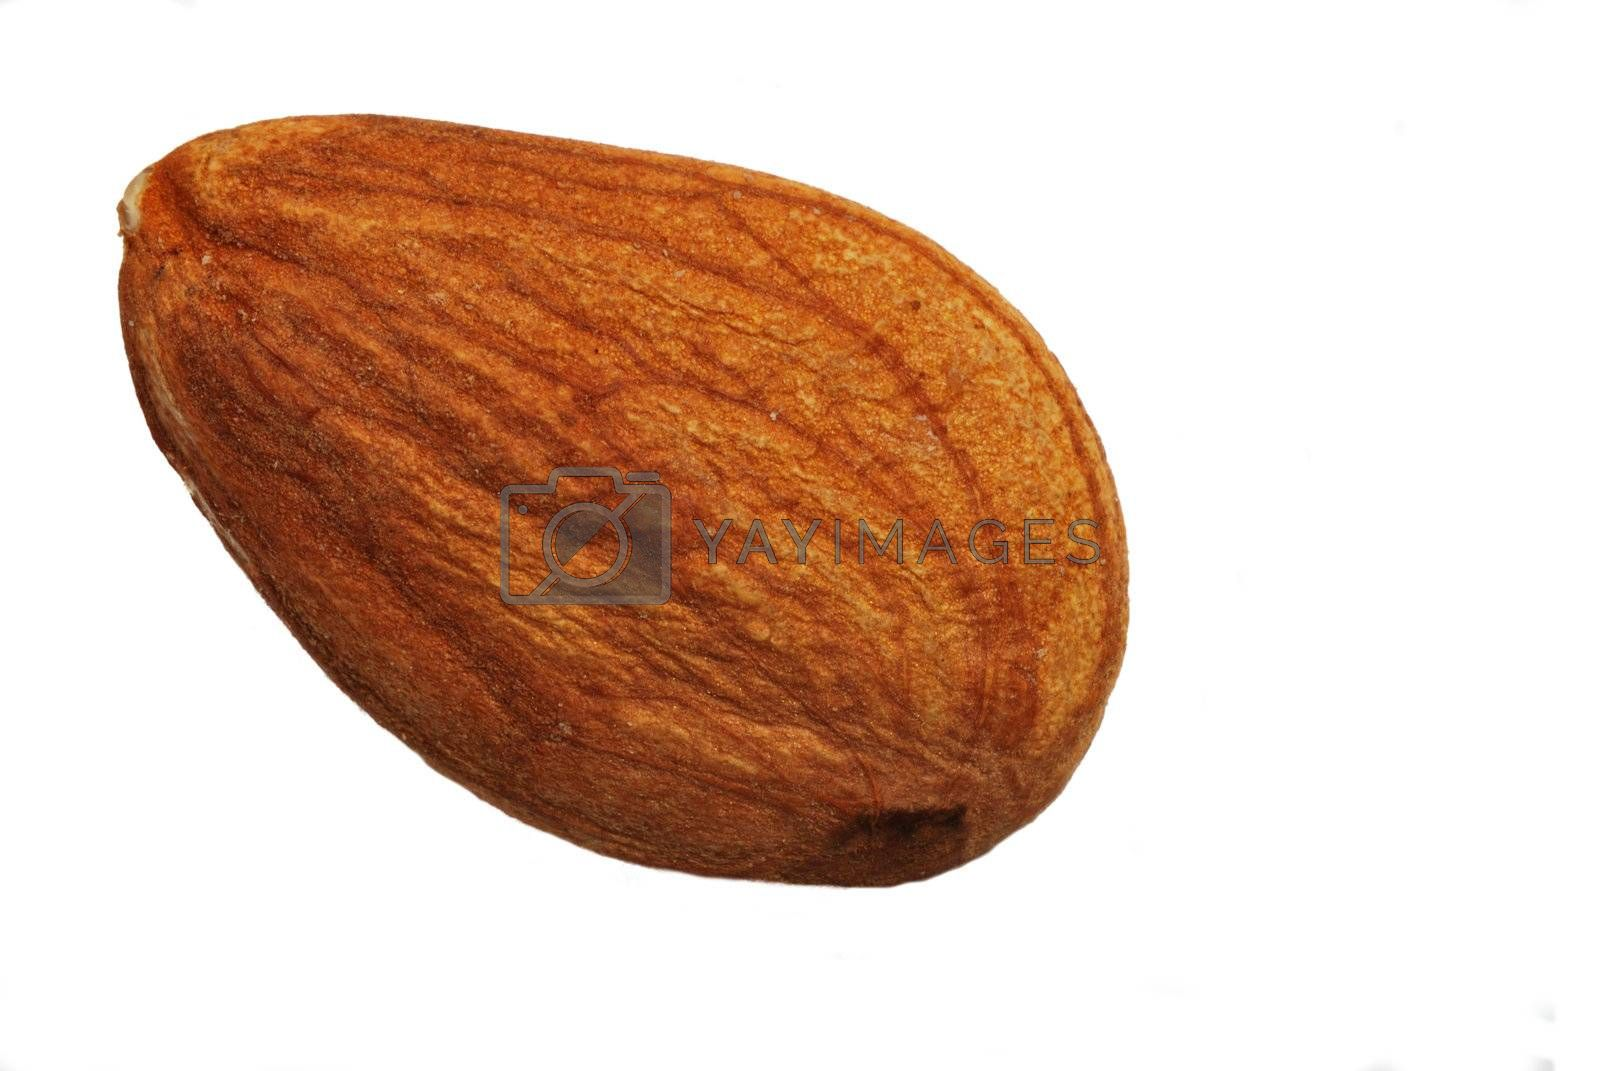 Single almond over white background